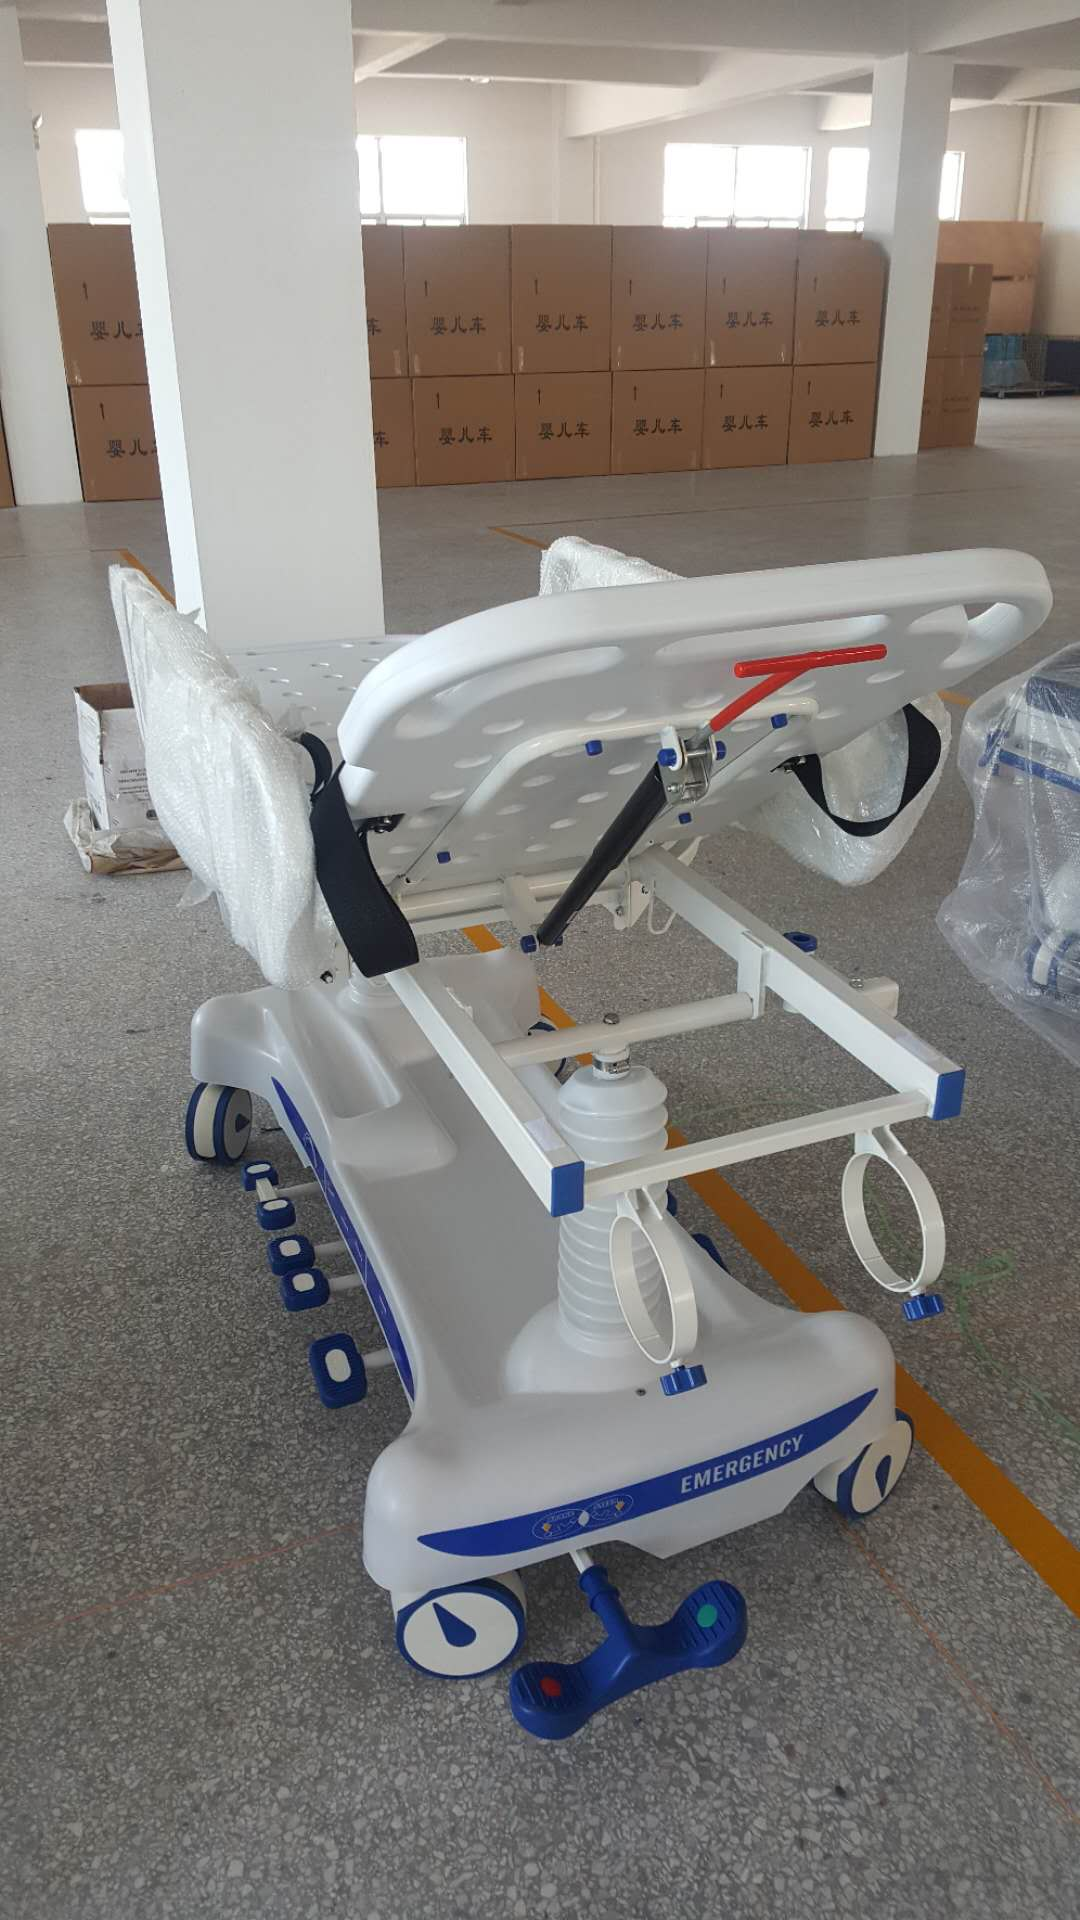 AC-ST018 PP material side rail and bed board Hydraulic Transfer Stretcher